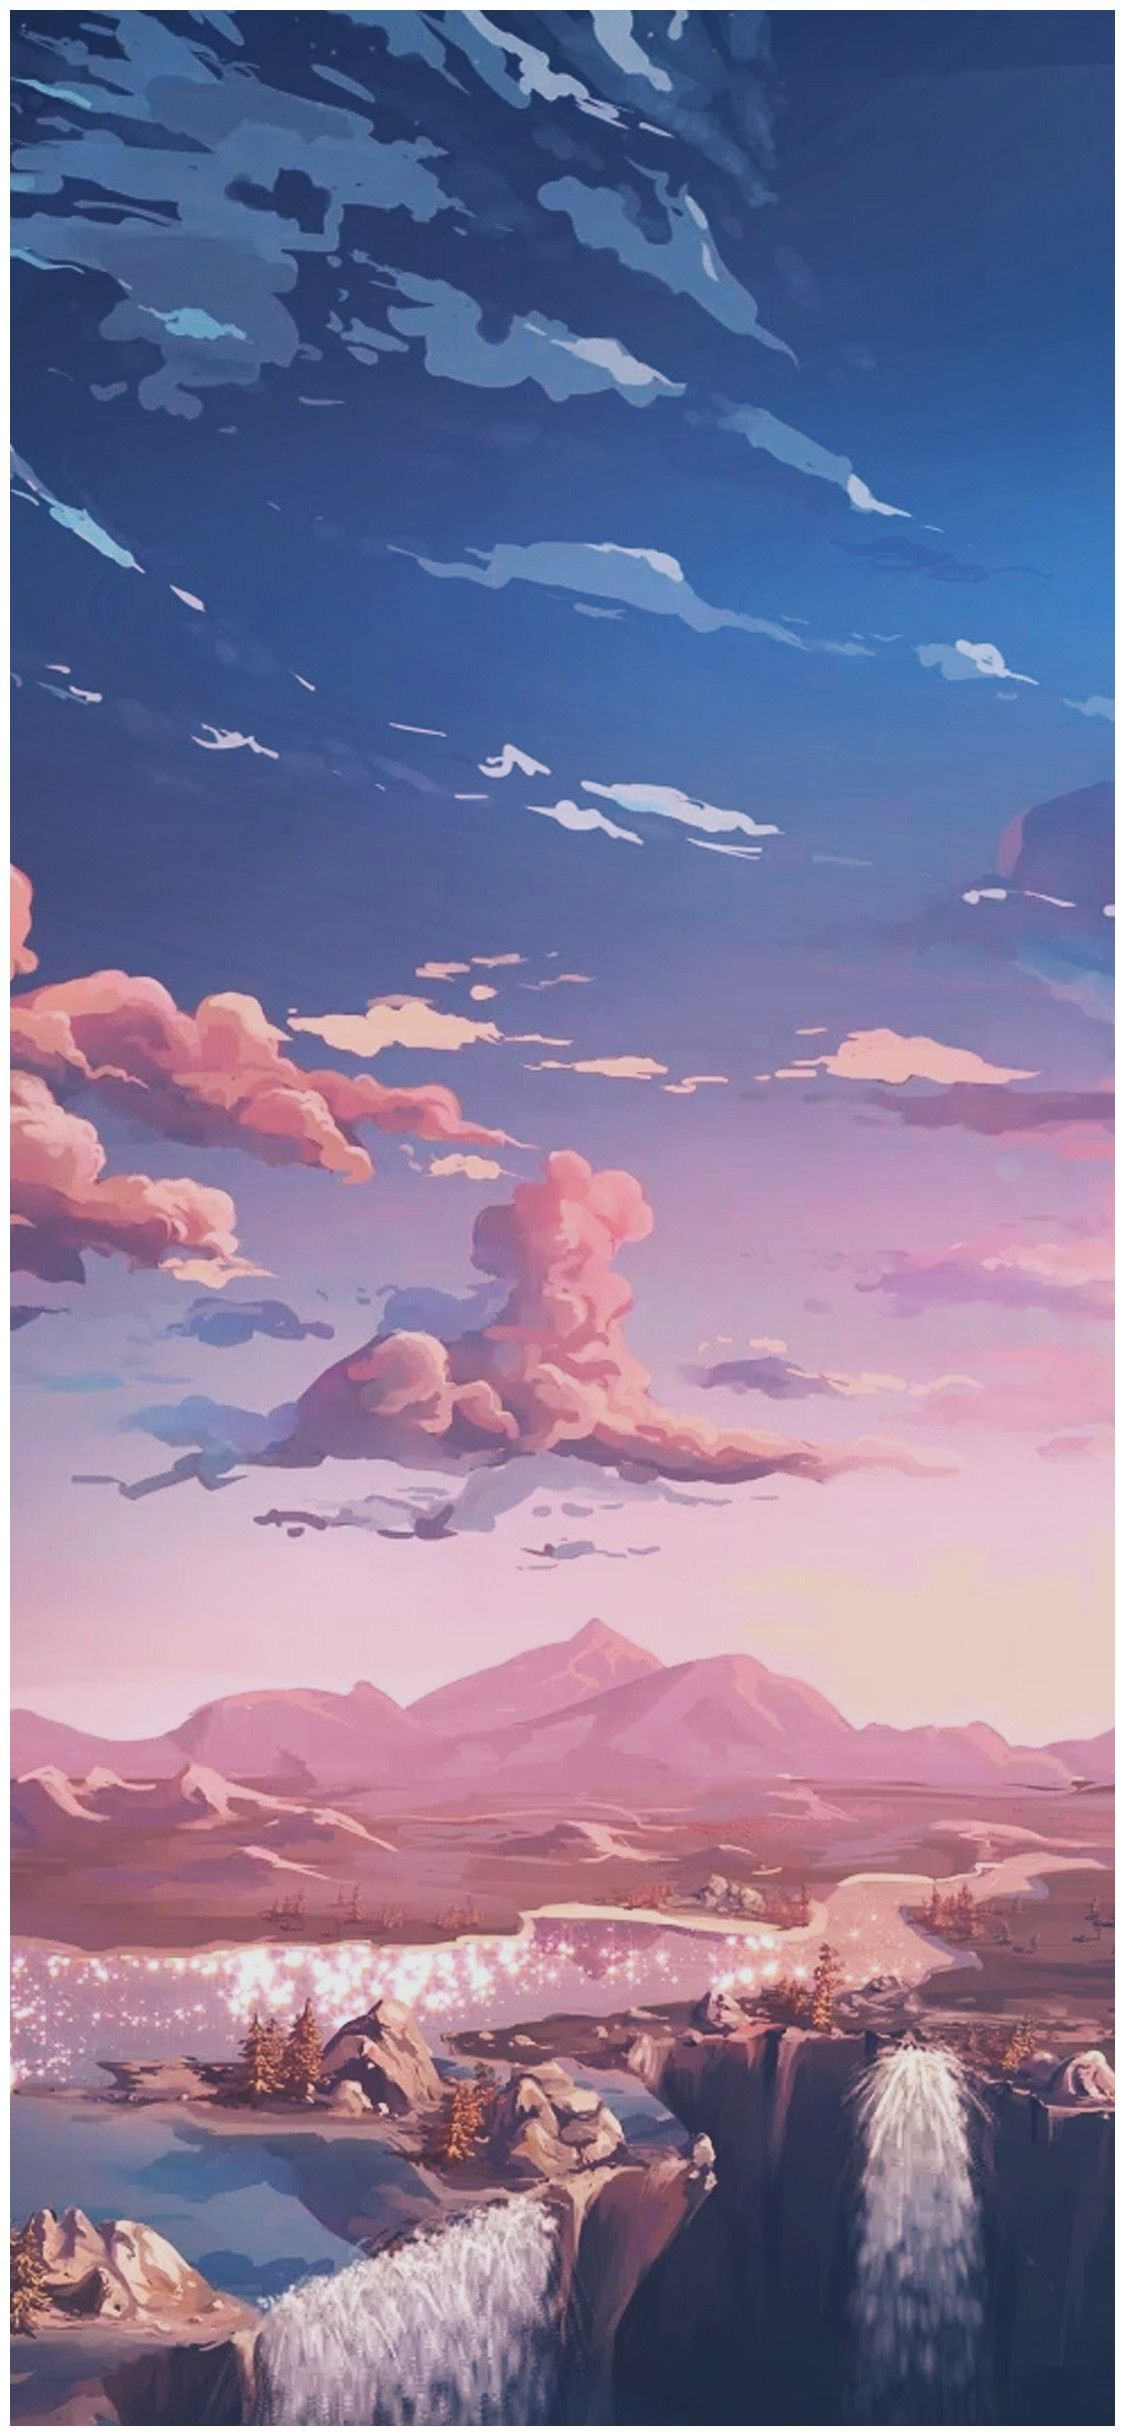 Aesthetic Anime Landscape Wallpapers Wallpaper Cave